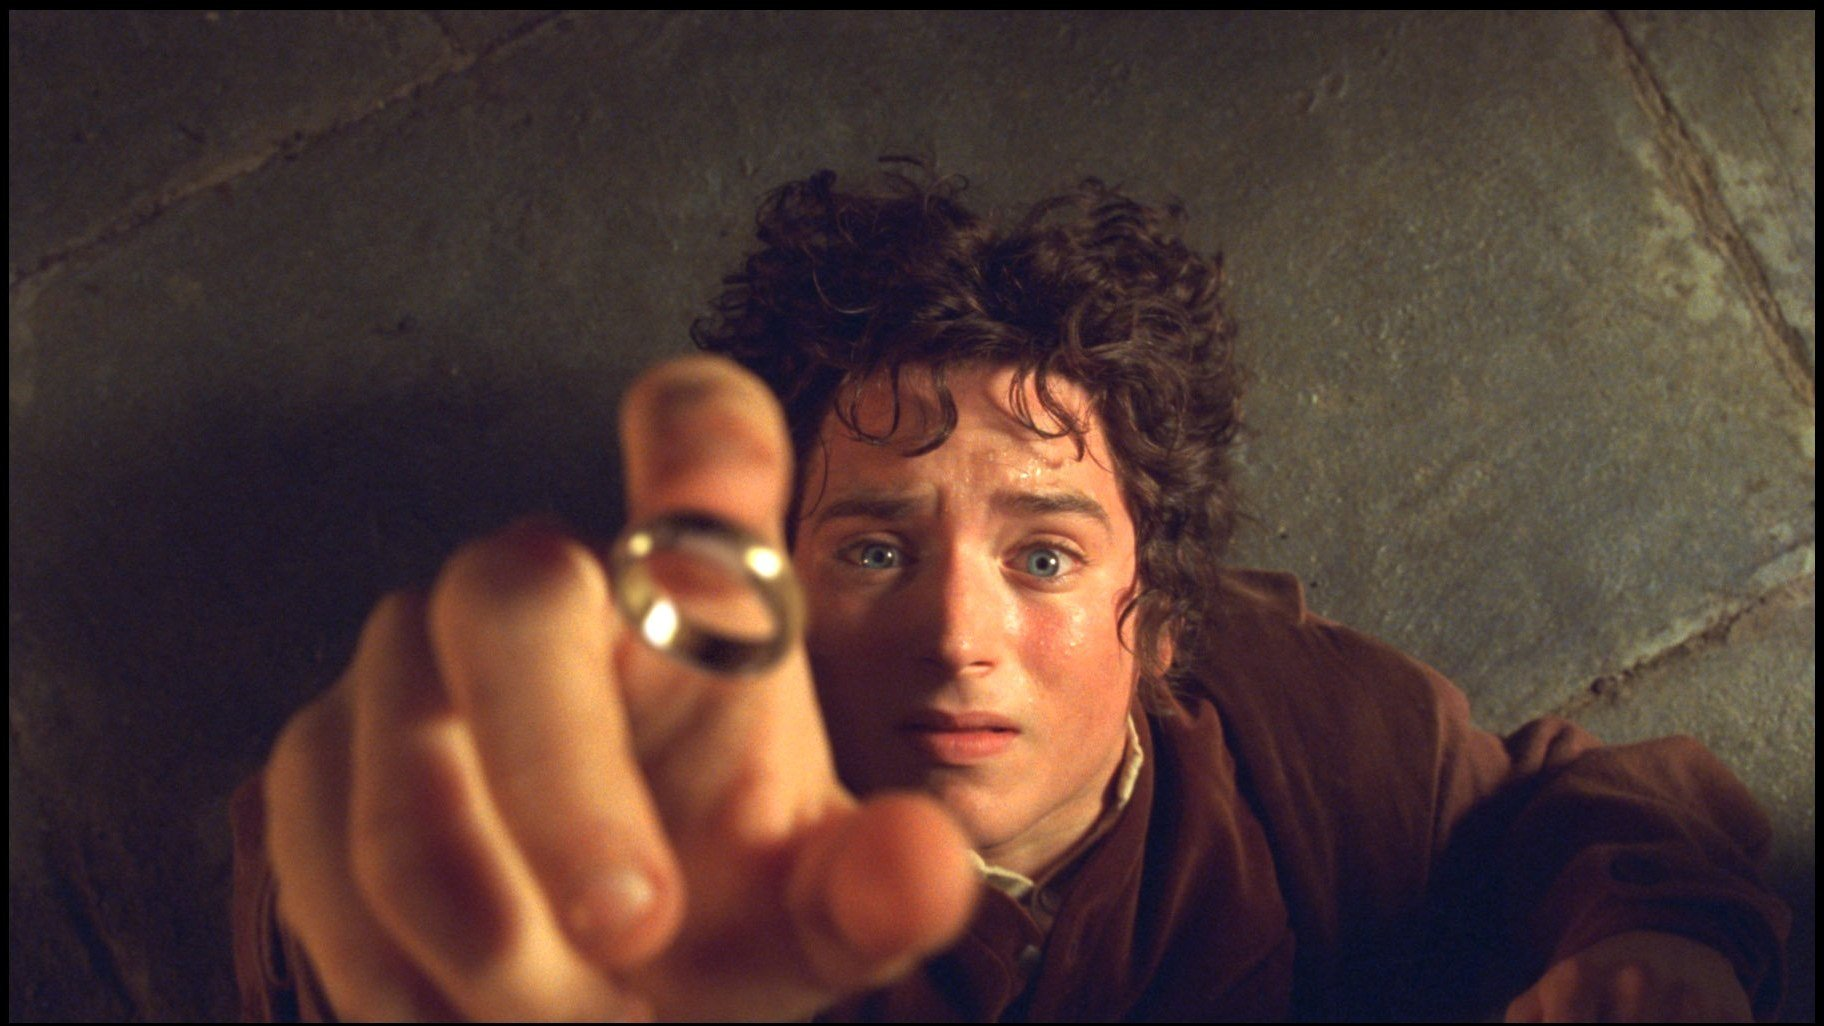 Amazon is making a 'Lord of the Rings' TV series https://t.co/8tjHBJo9YV https://t.co/fBNu6Ibc1K